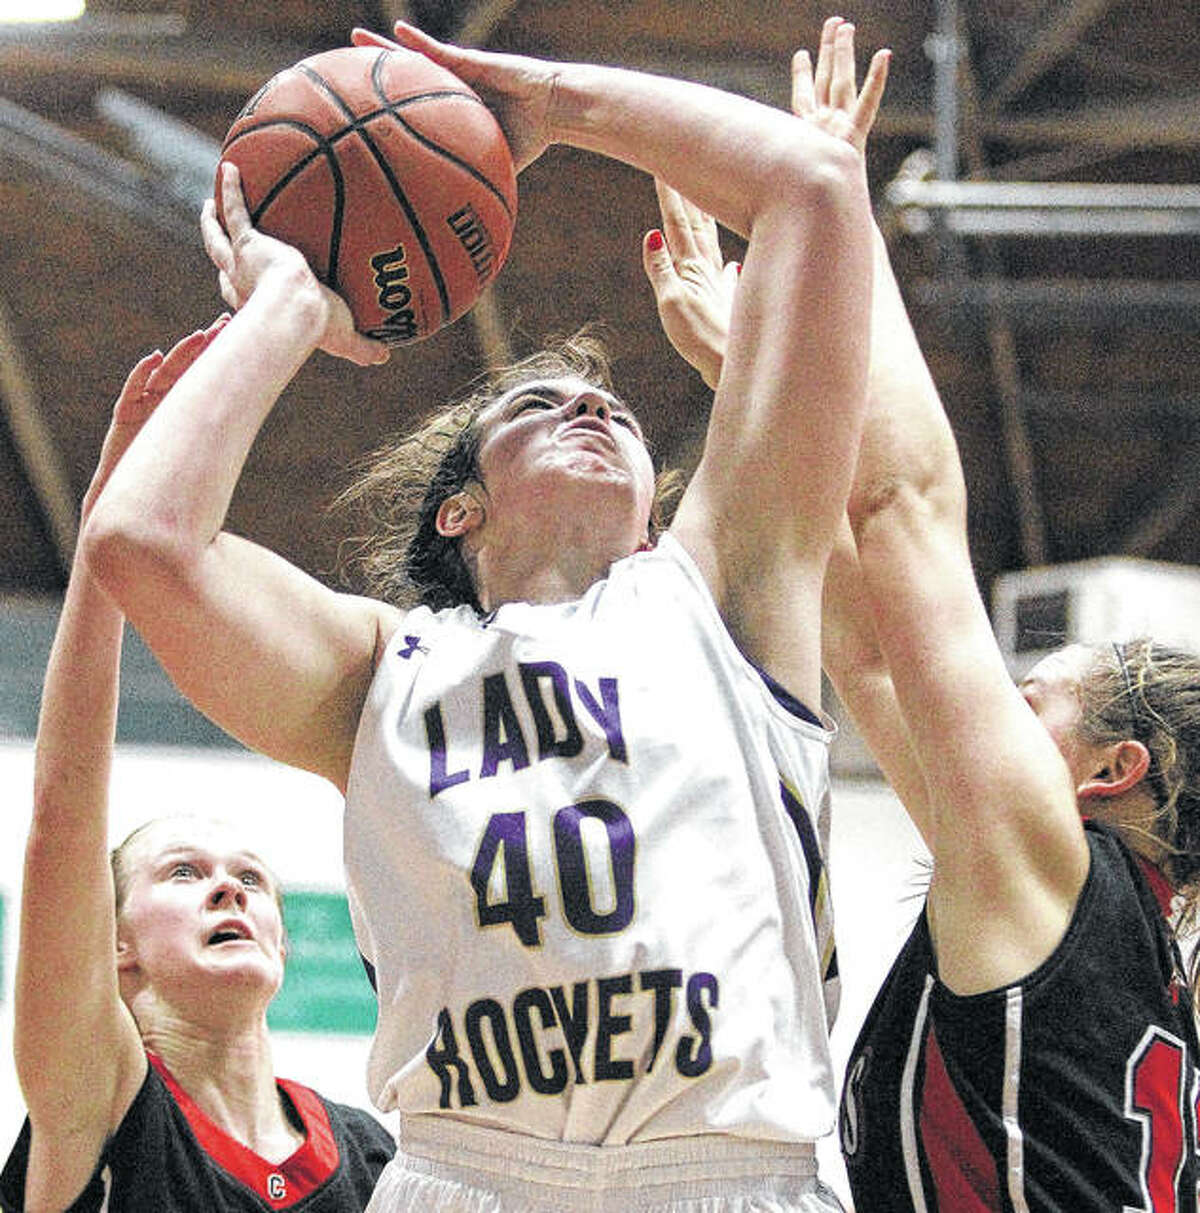 Routt's Katie Abell rises for a shot during a girls' basketball game against Calhoun Monday night at the Routt Dome in Jacksonville.